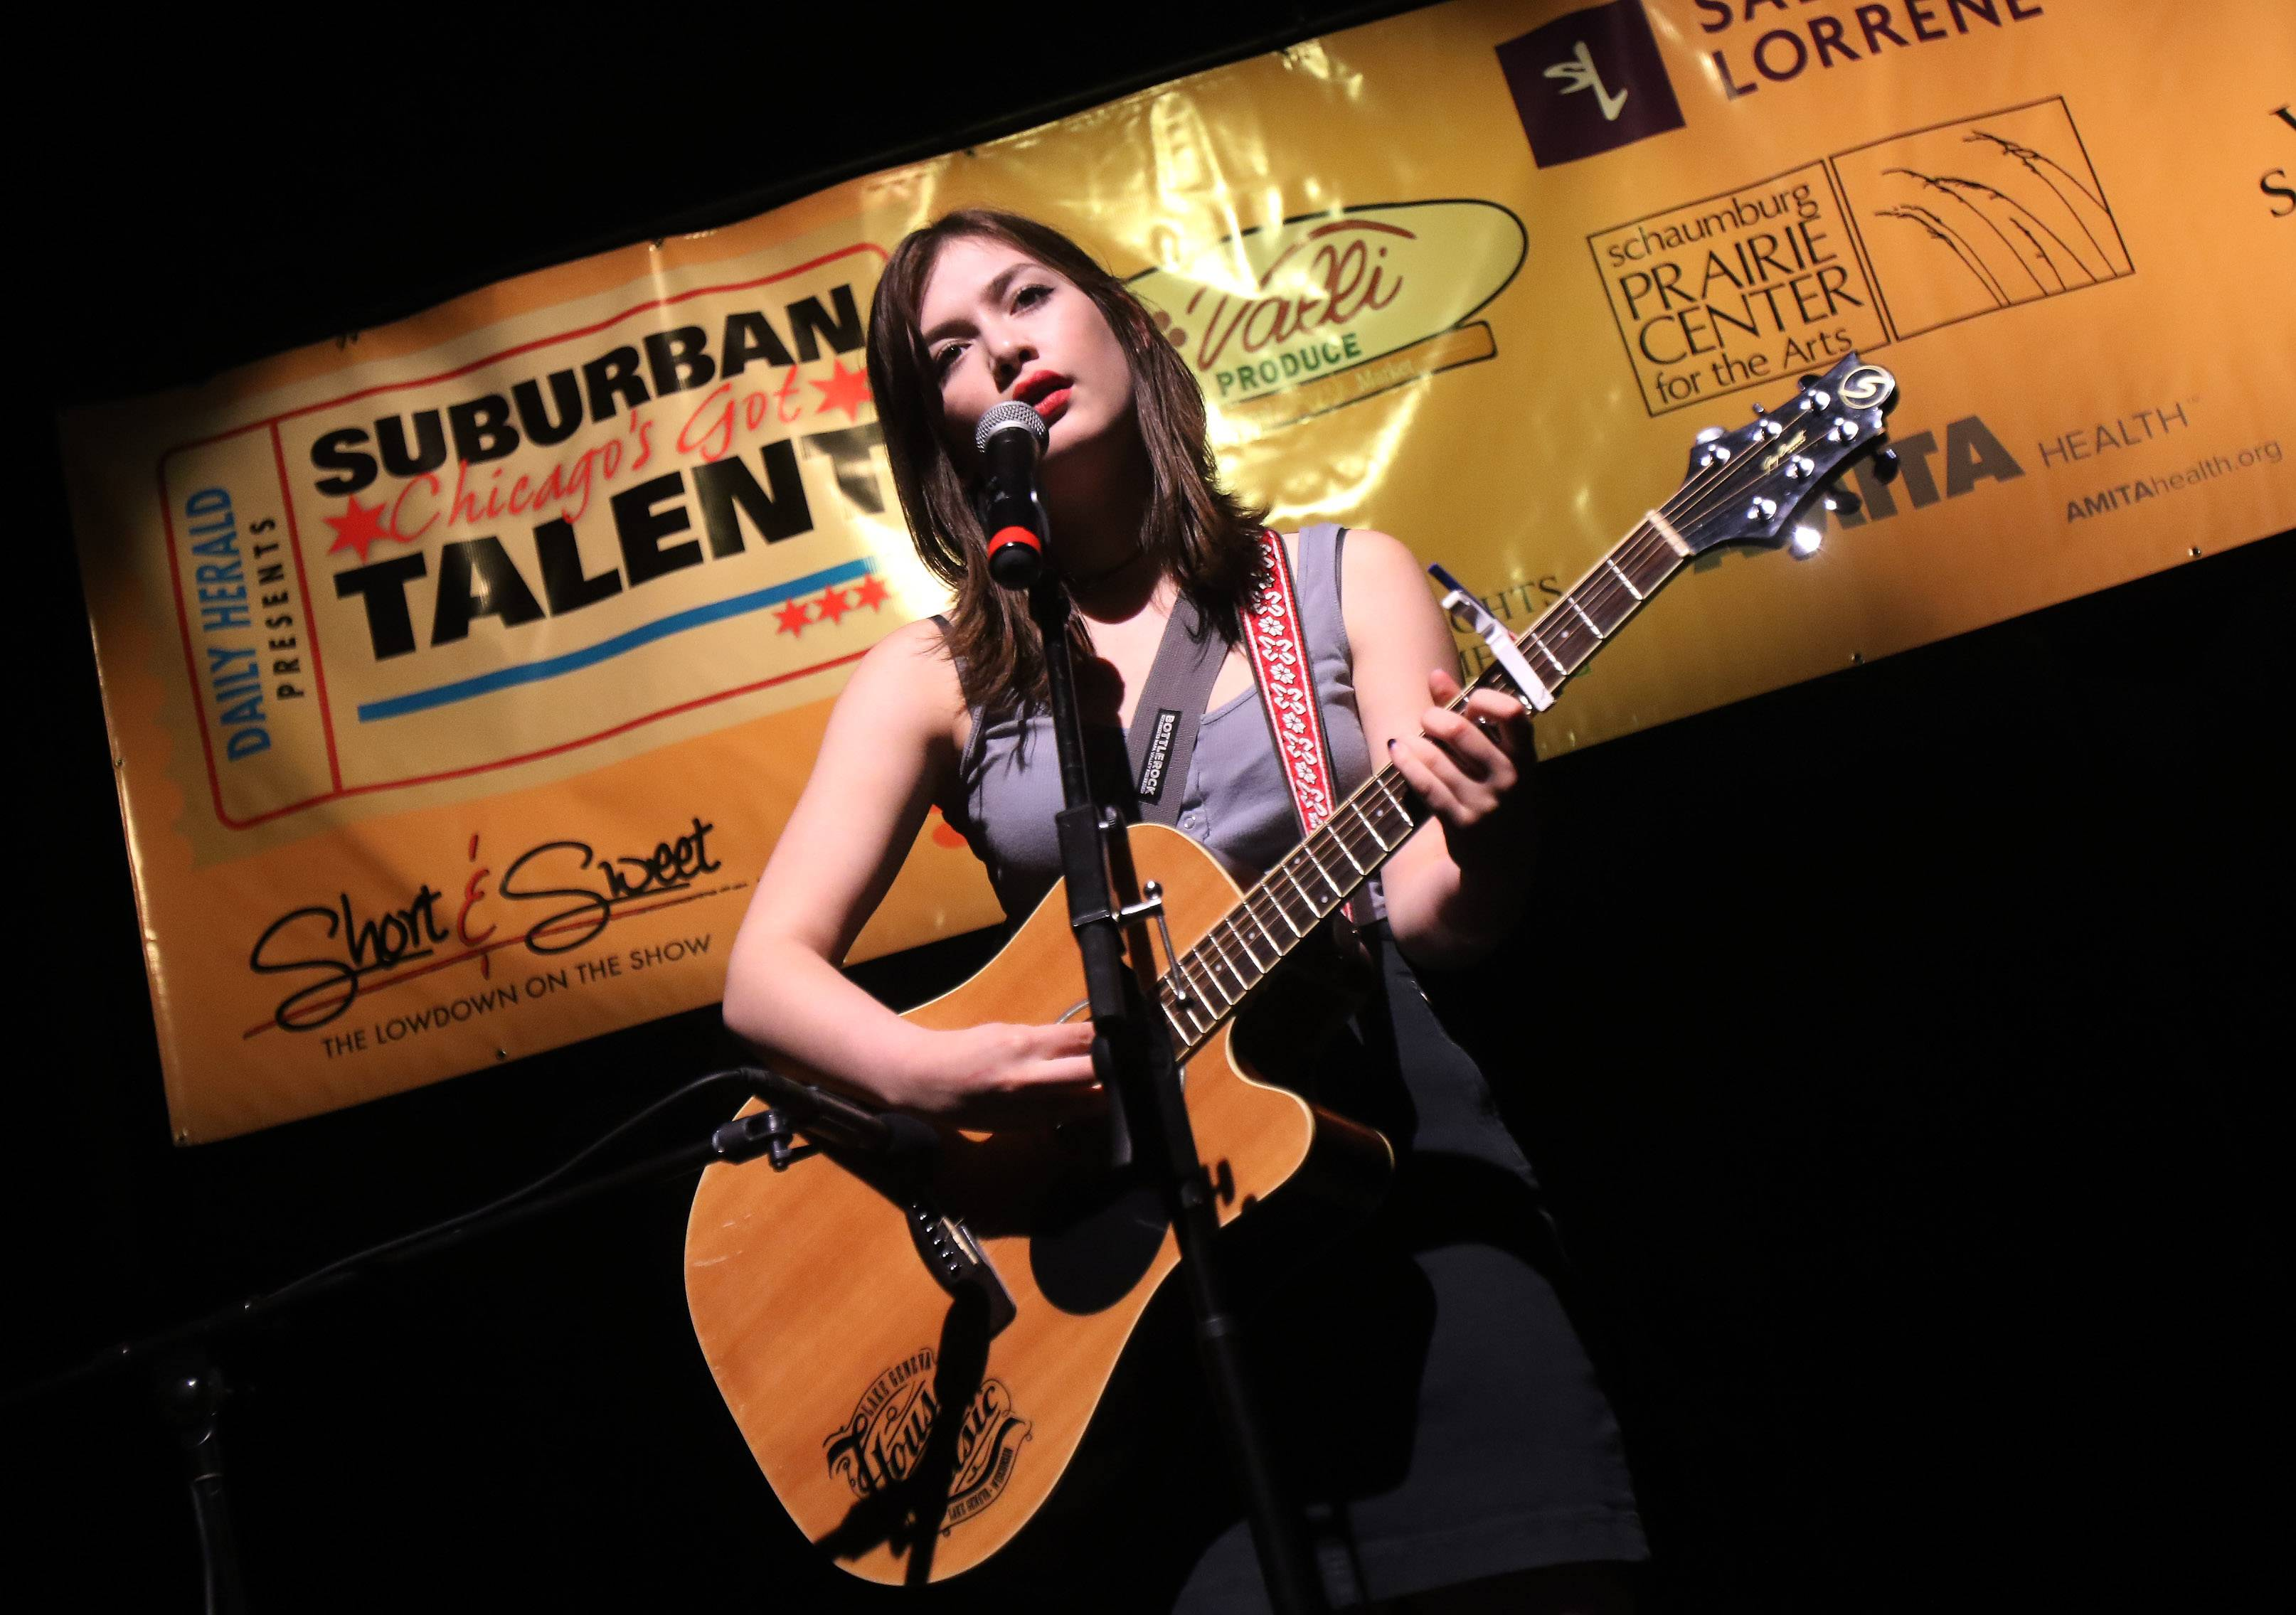 Rhea of Richmond sings as she plays guitar during the Suburban Chicago's Got Talent for 2016 competition at the Prairie Center for the Arts in Schaumburg. The winner of the final contest wins a STARter kit worth $5,000 with a chance to be an opening act at the Arcada Theater.